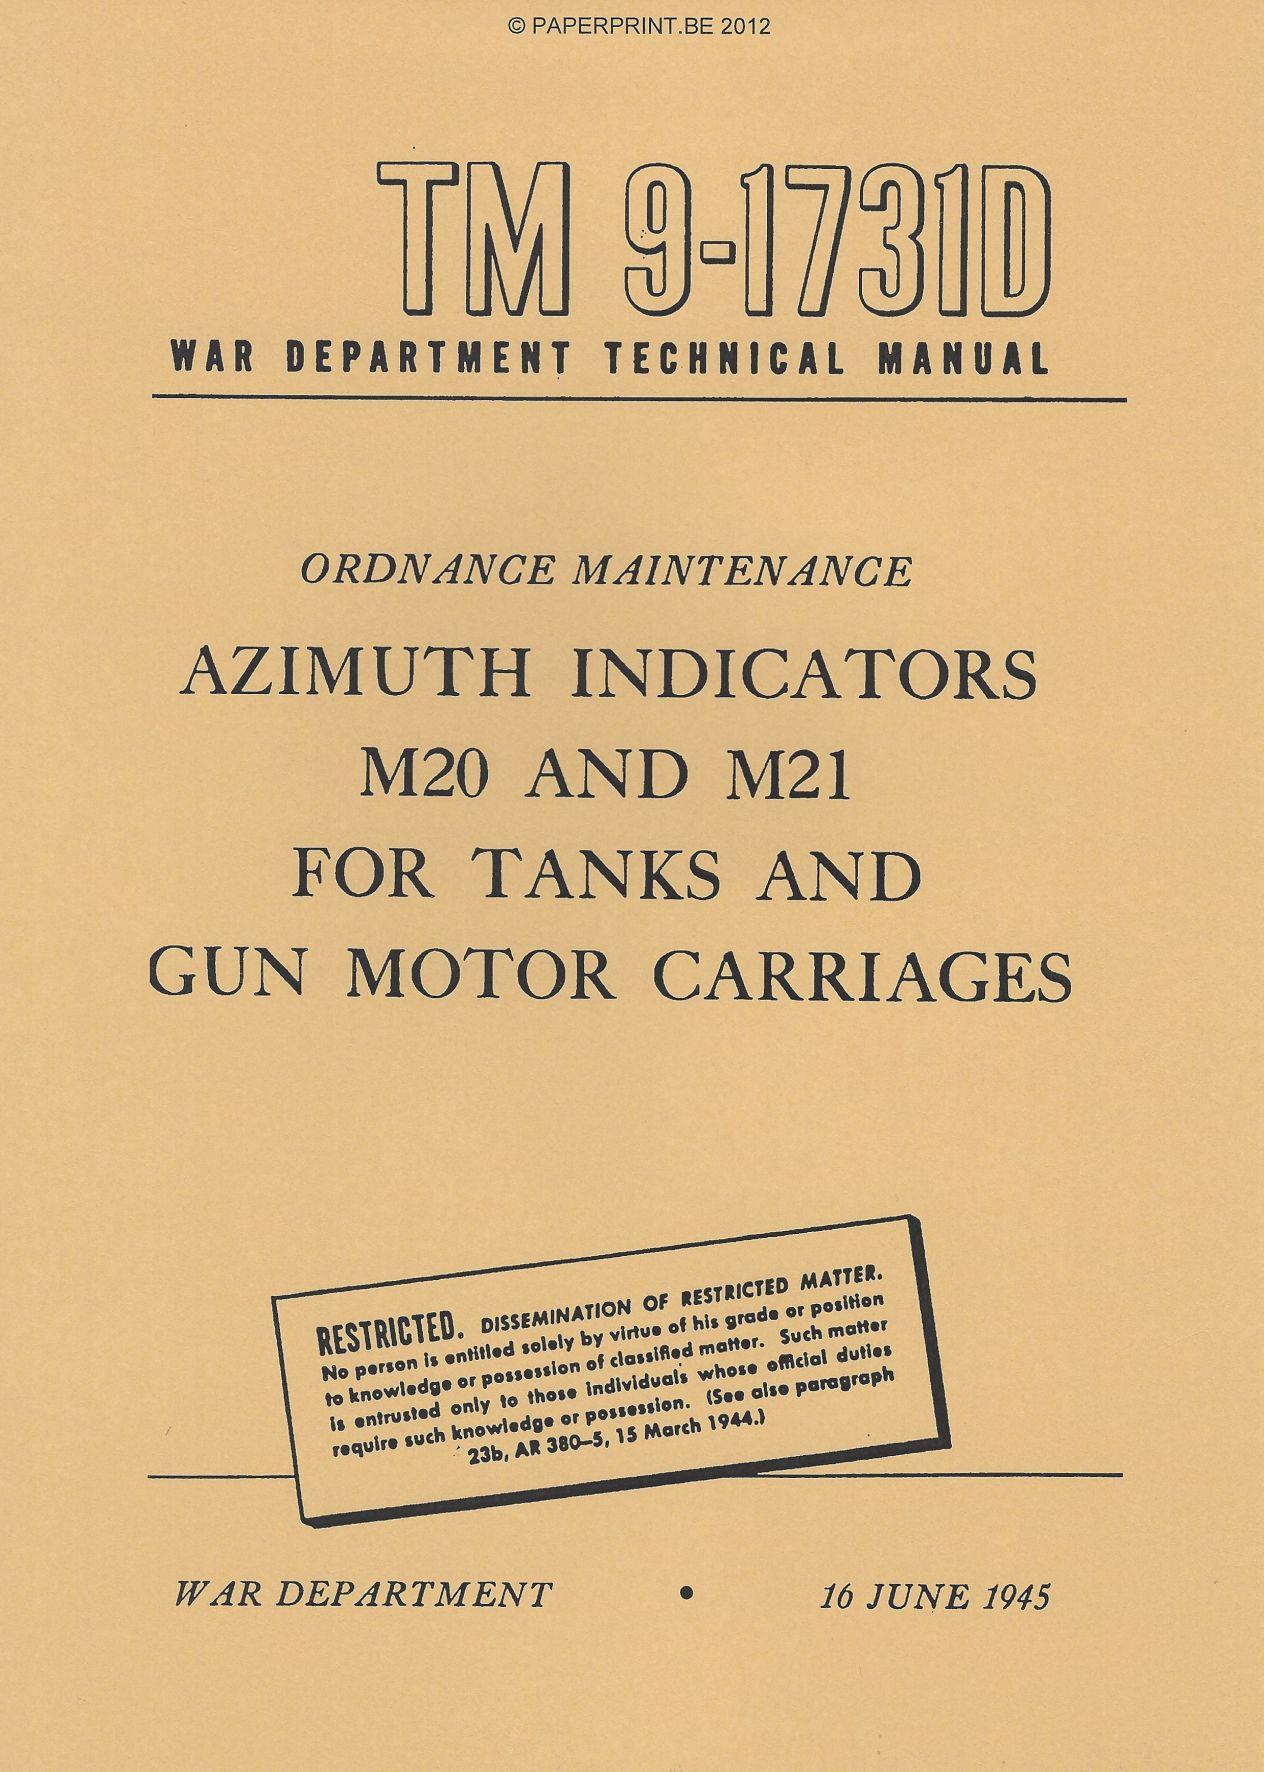 TM 9-1731D US AZIMUTH INDICATORS